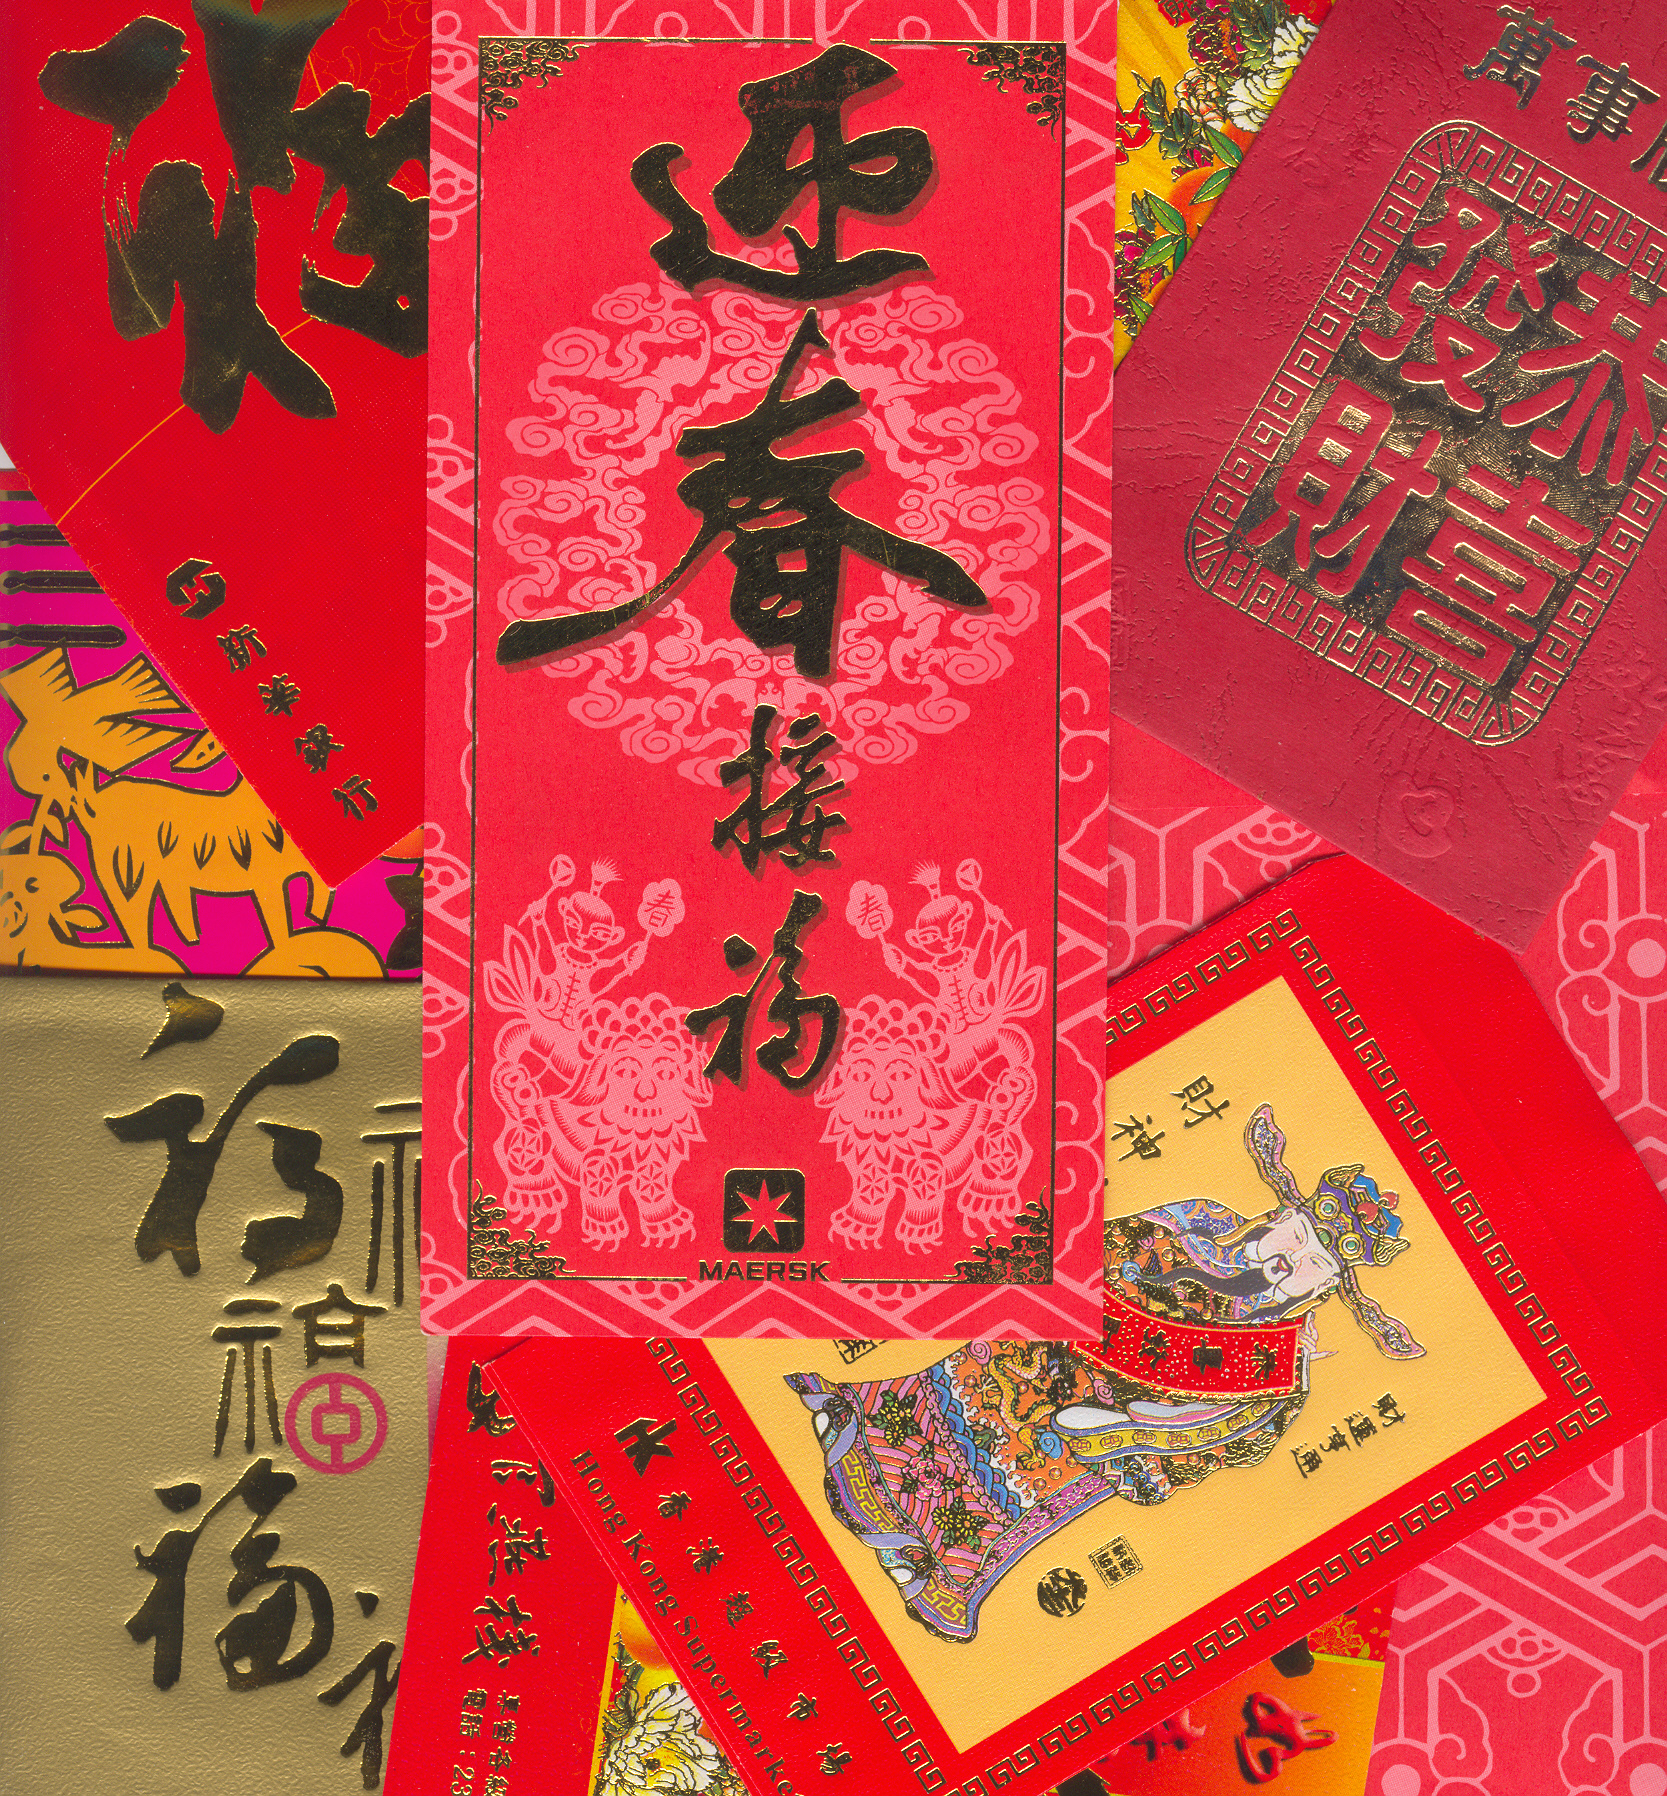 red envelope wikipedia